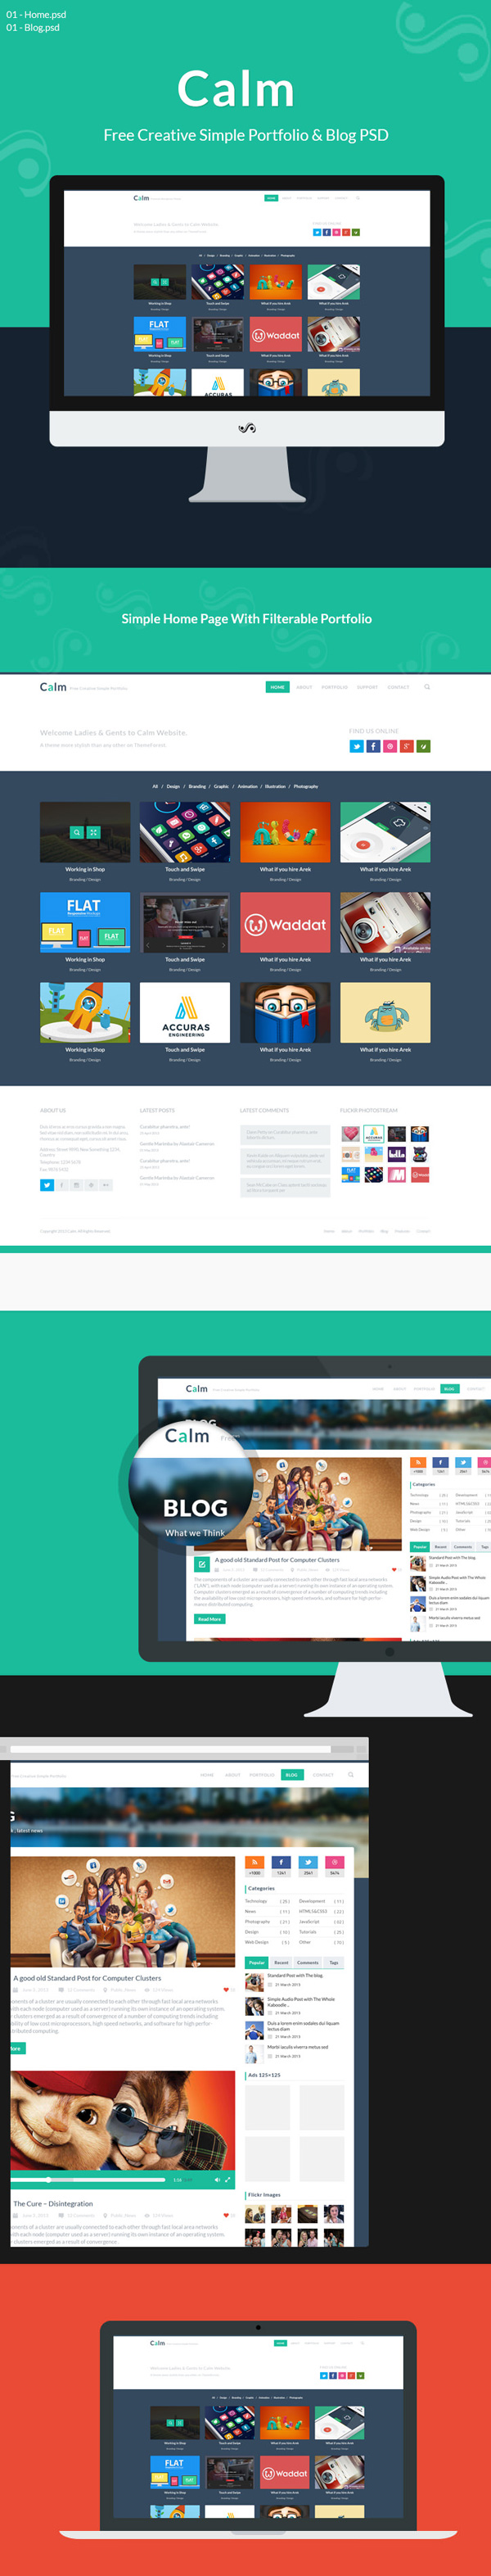 free-psd-template-preview